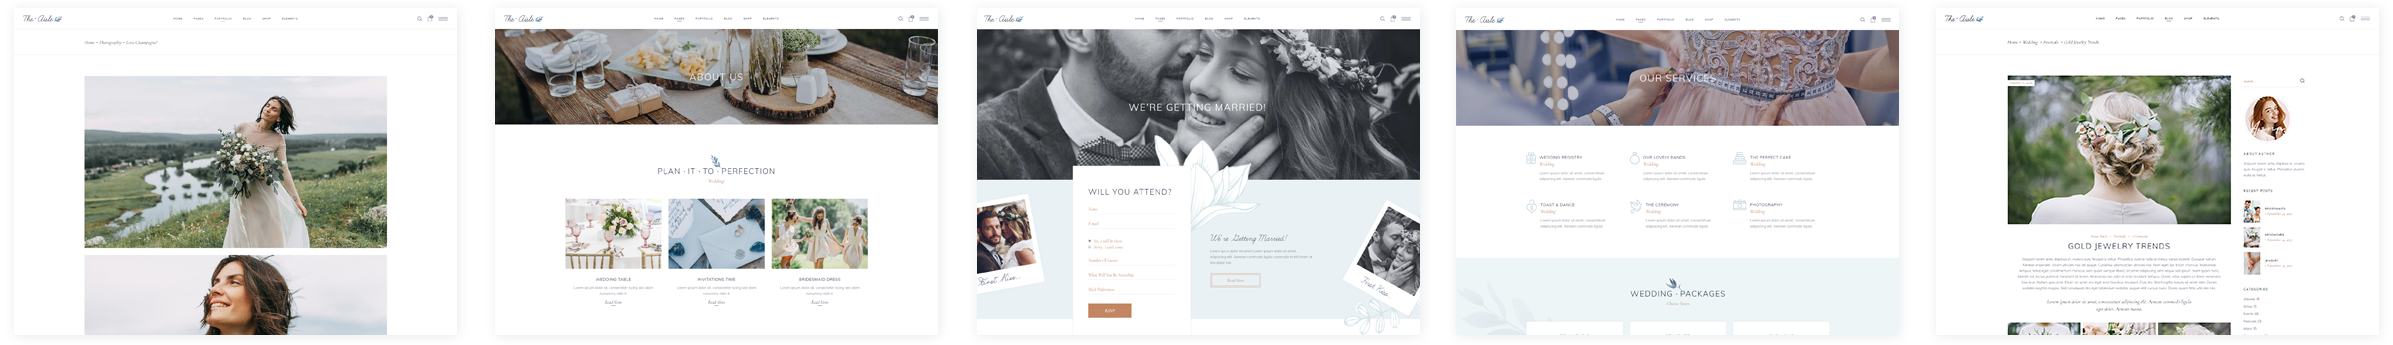 landing-innerpages-2